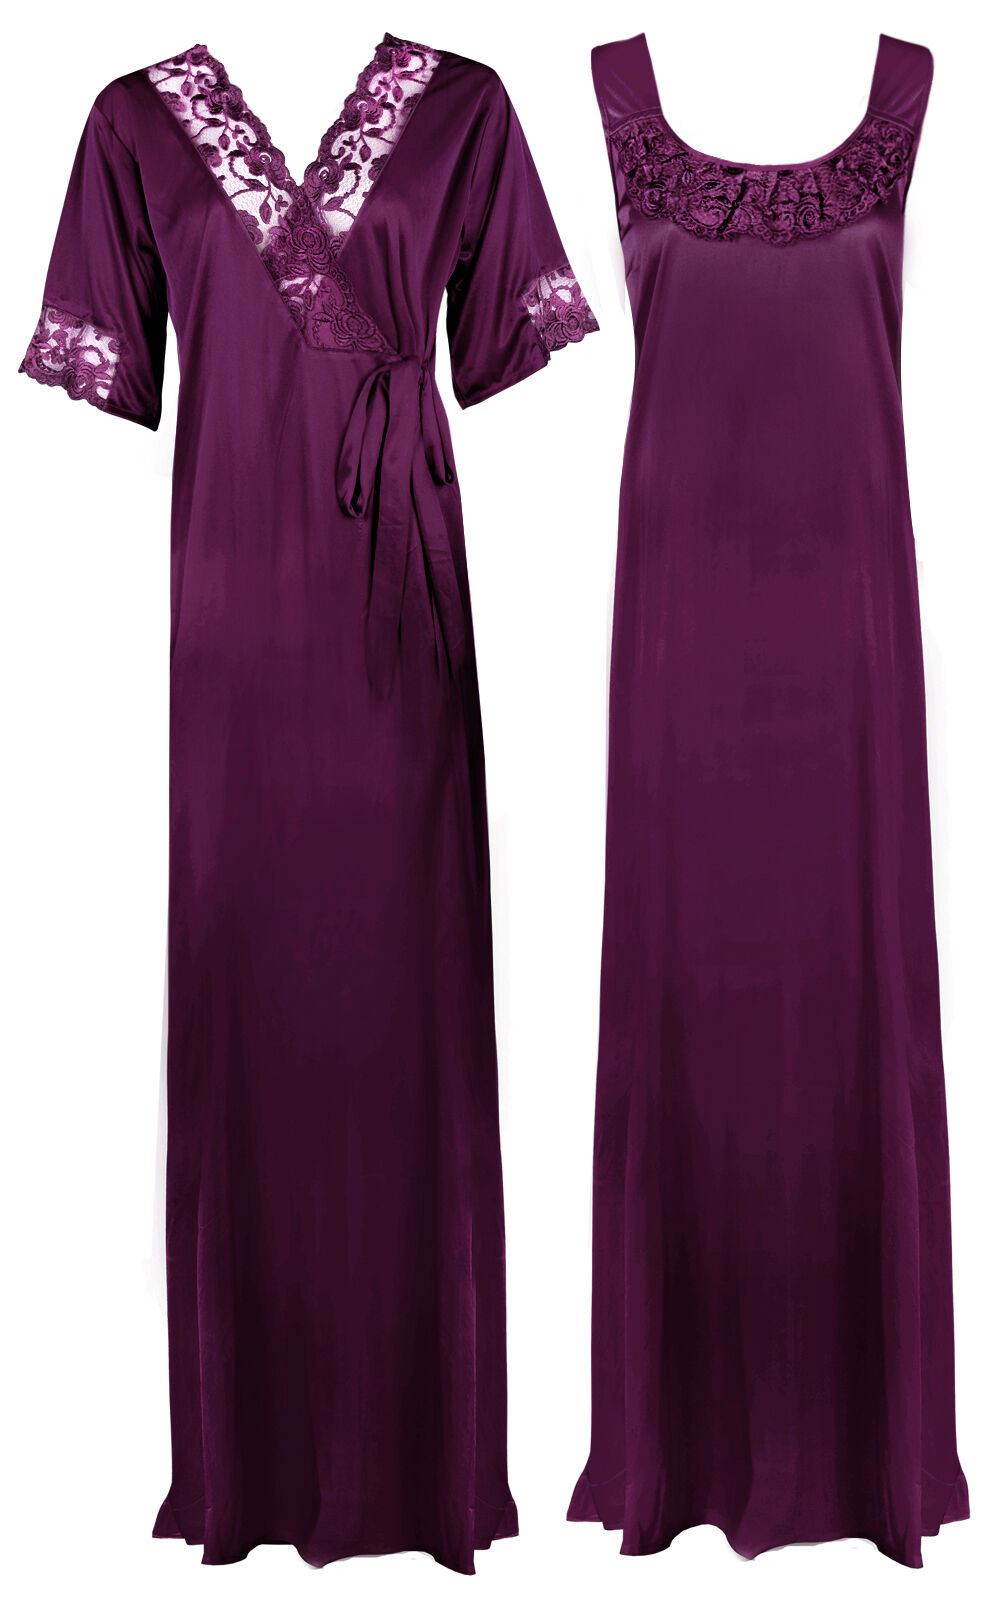 Women Plus Size 2 Pcs Satin Nightdress - XL. 2XL DARK PURPLE Hautie Nightfashion